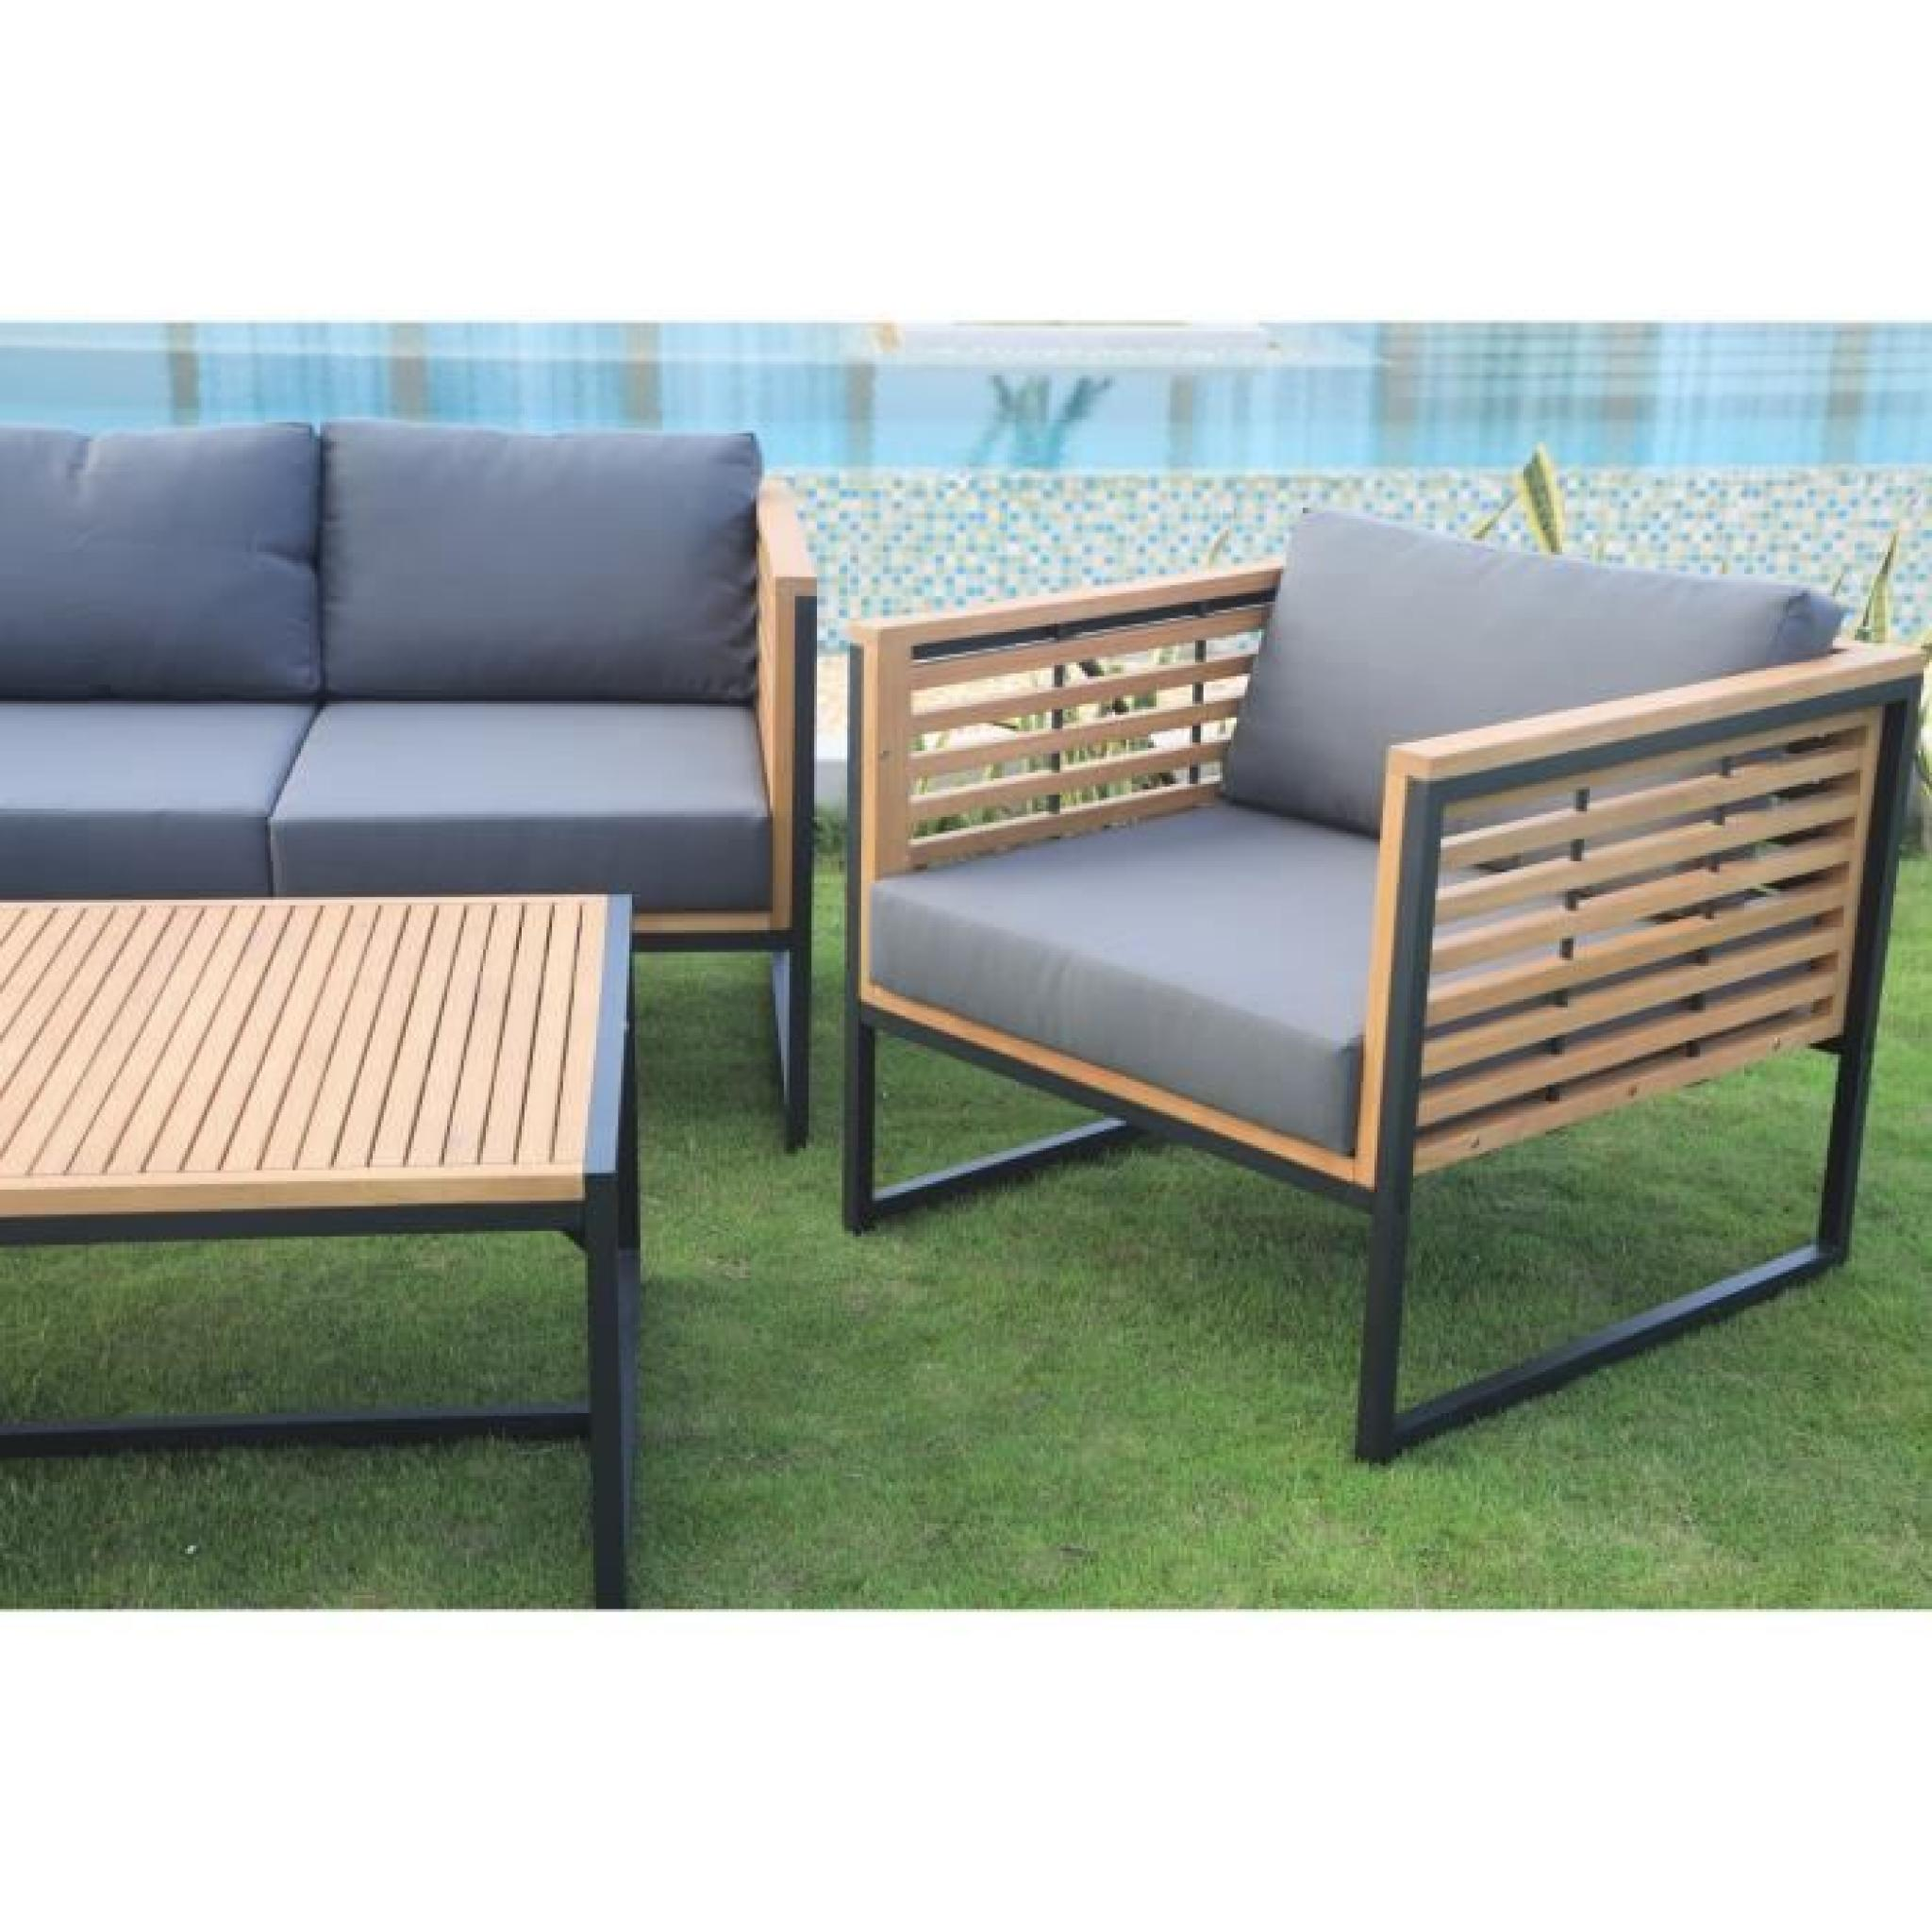 salon de jardin 5 places en eucalyptus fsc et aluminium achat vente salon de jardin en bois. Black Bedroom Furniture Sets. Home Design Ideas